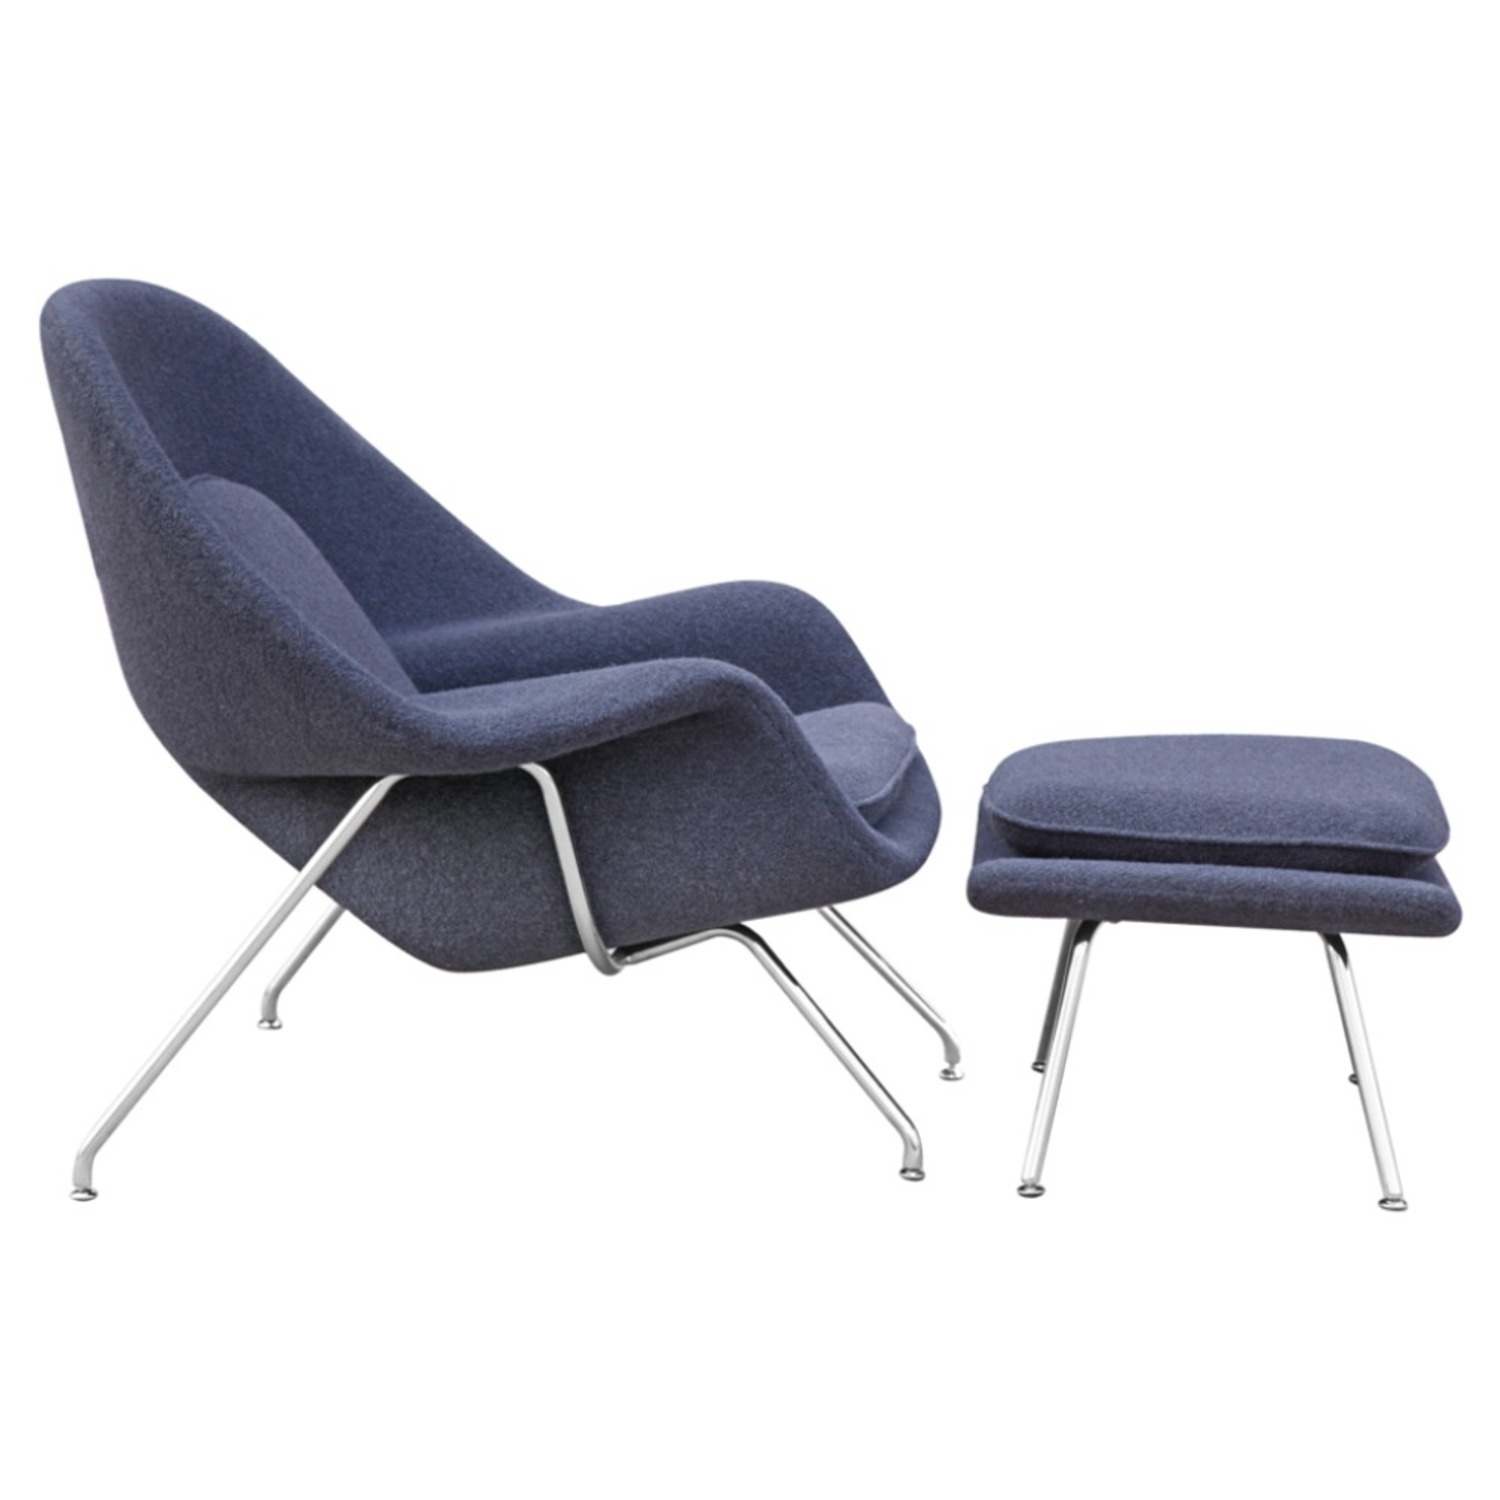 Chair & Ottoman Covered In Gray Wool Fabric - image-1